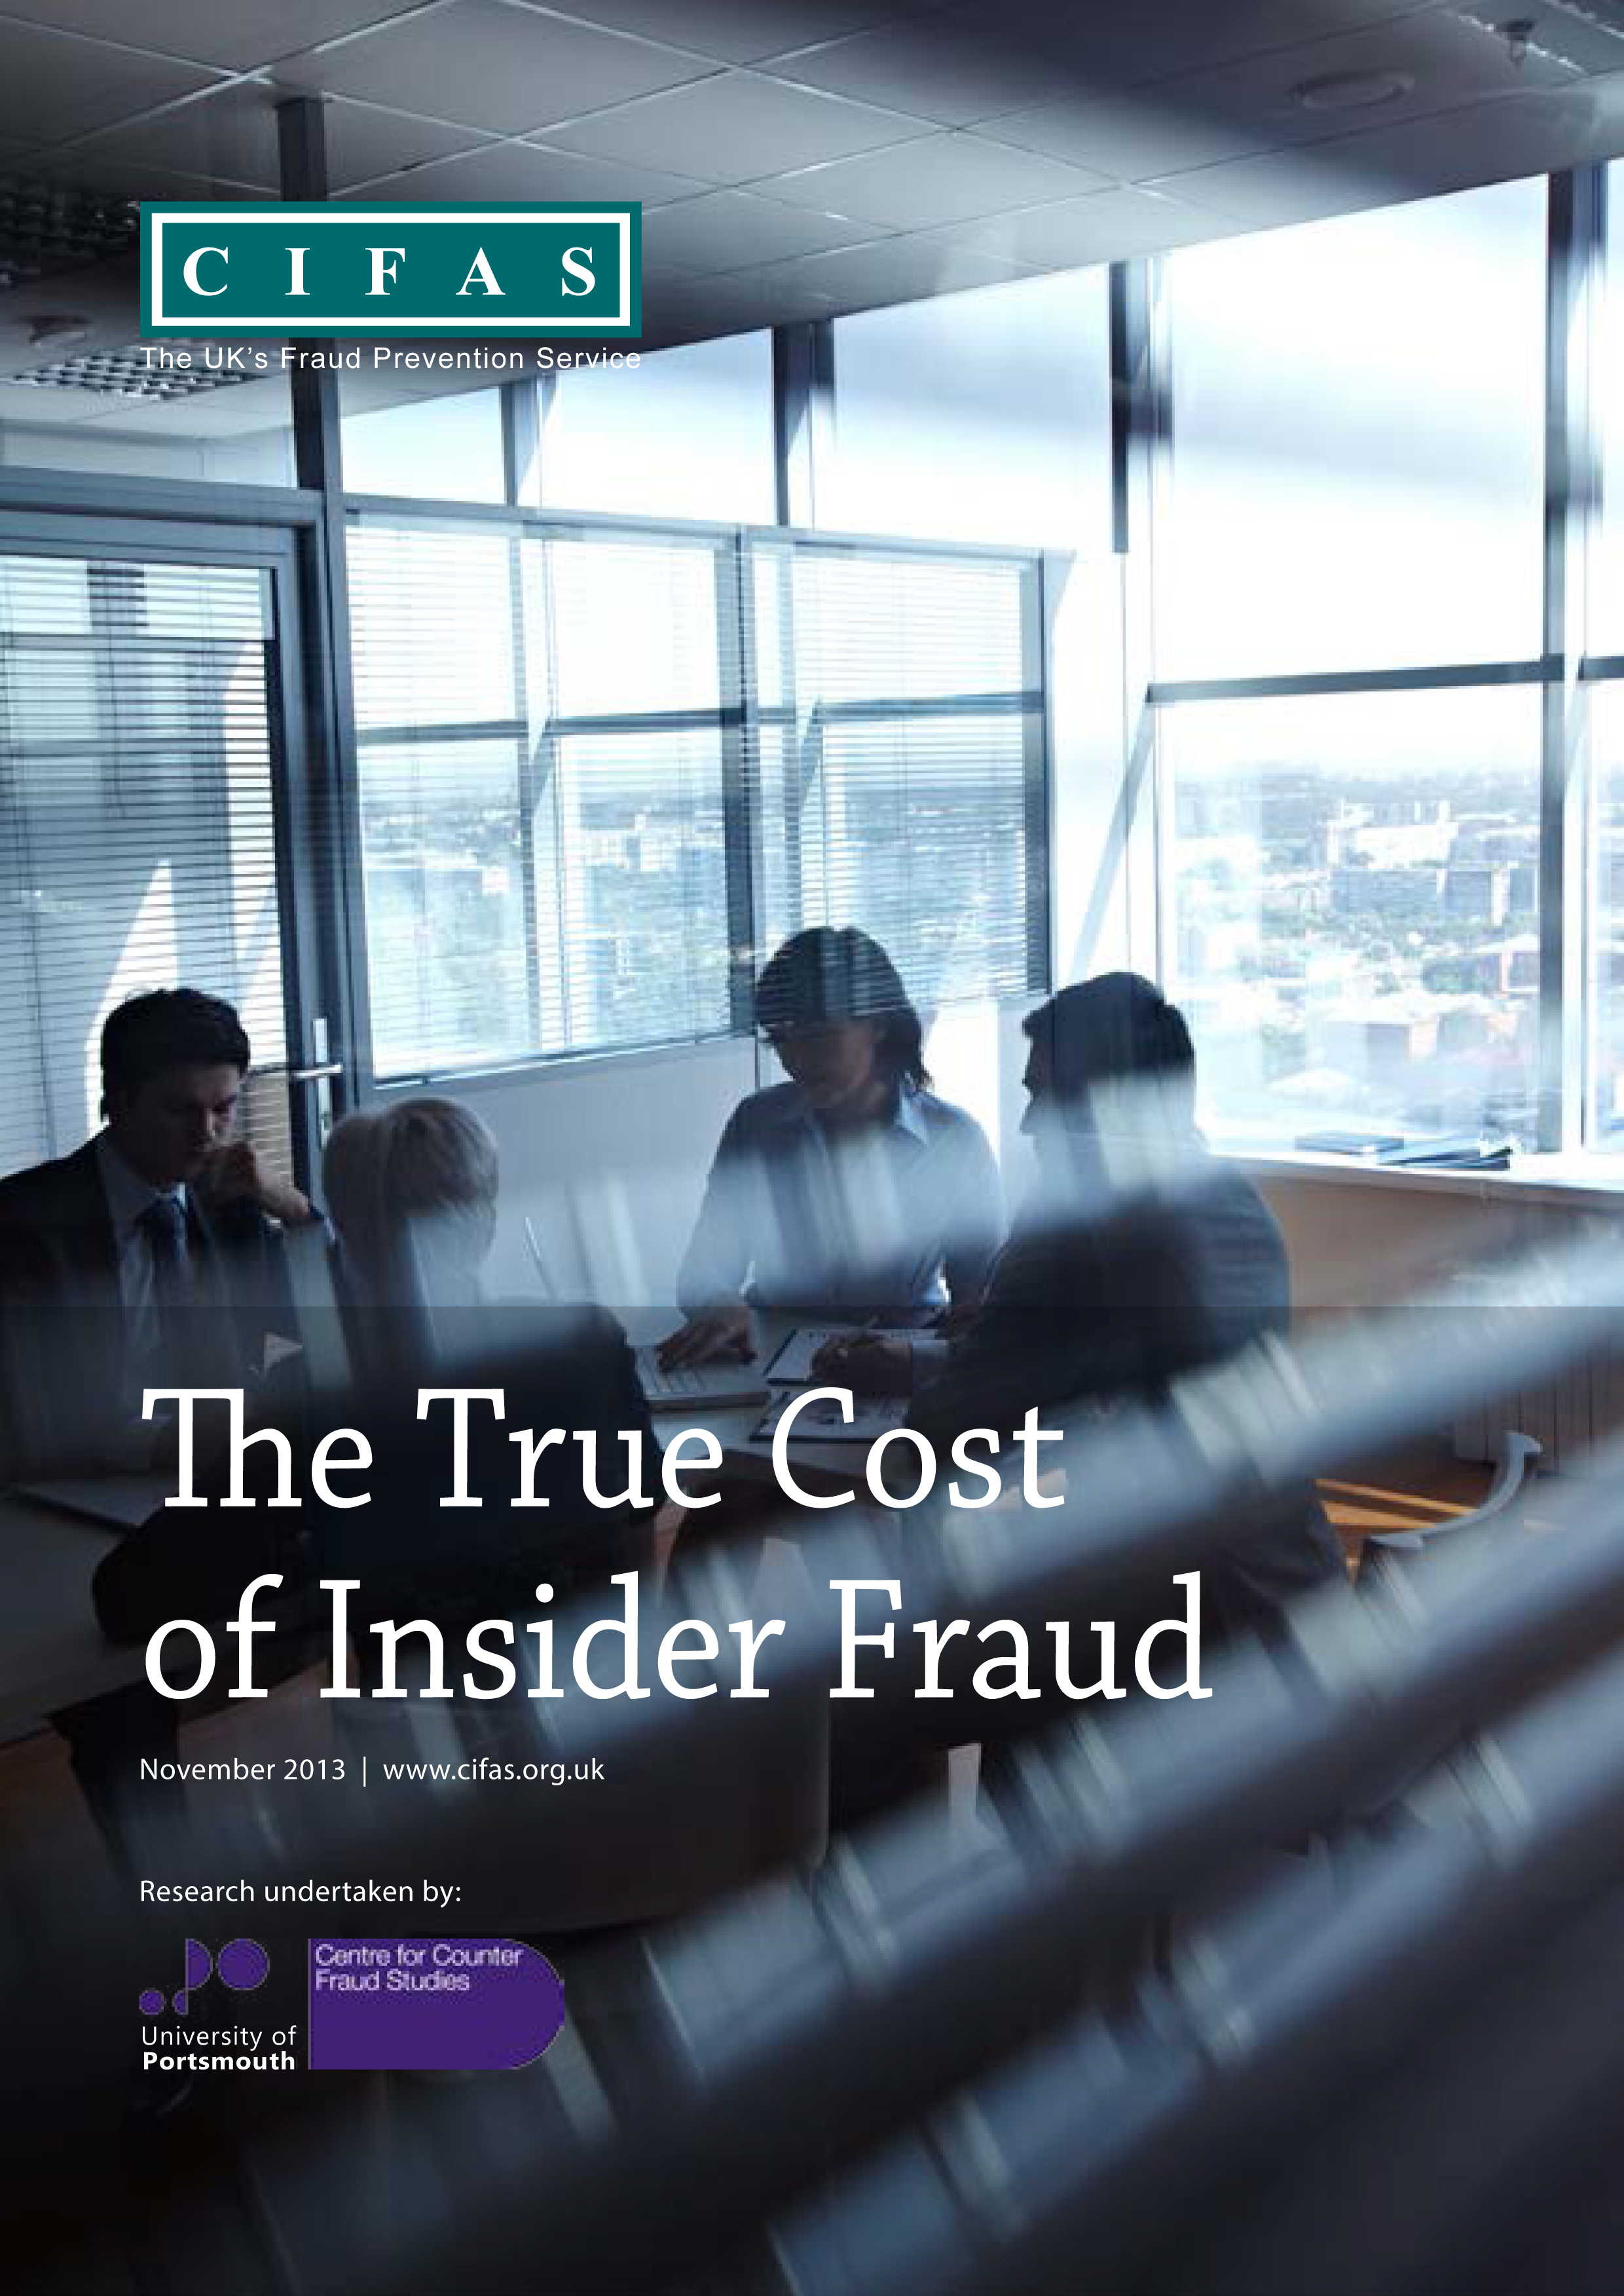 CIFAS cost of internal fraud report